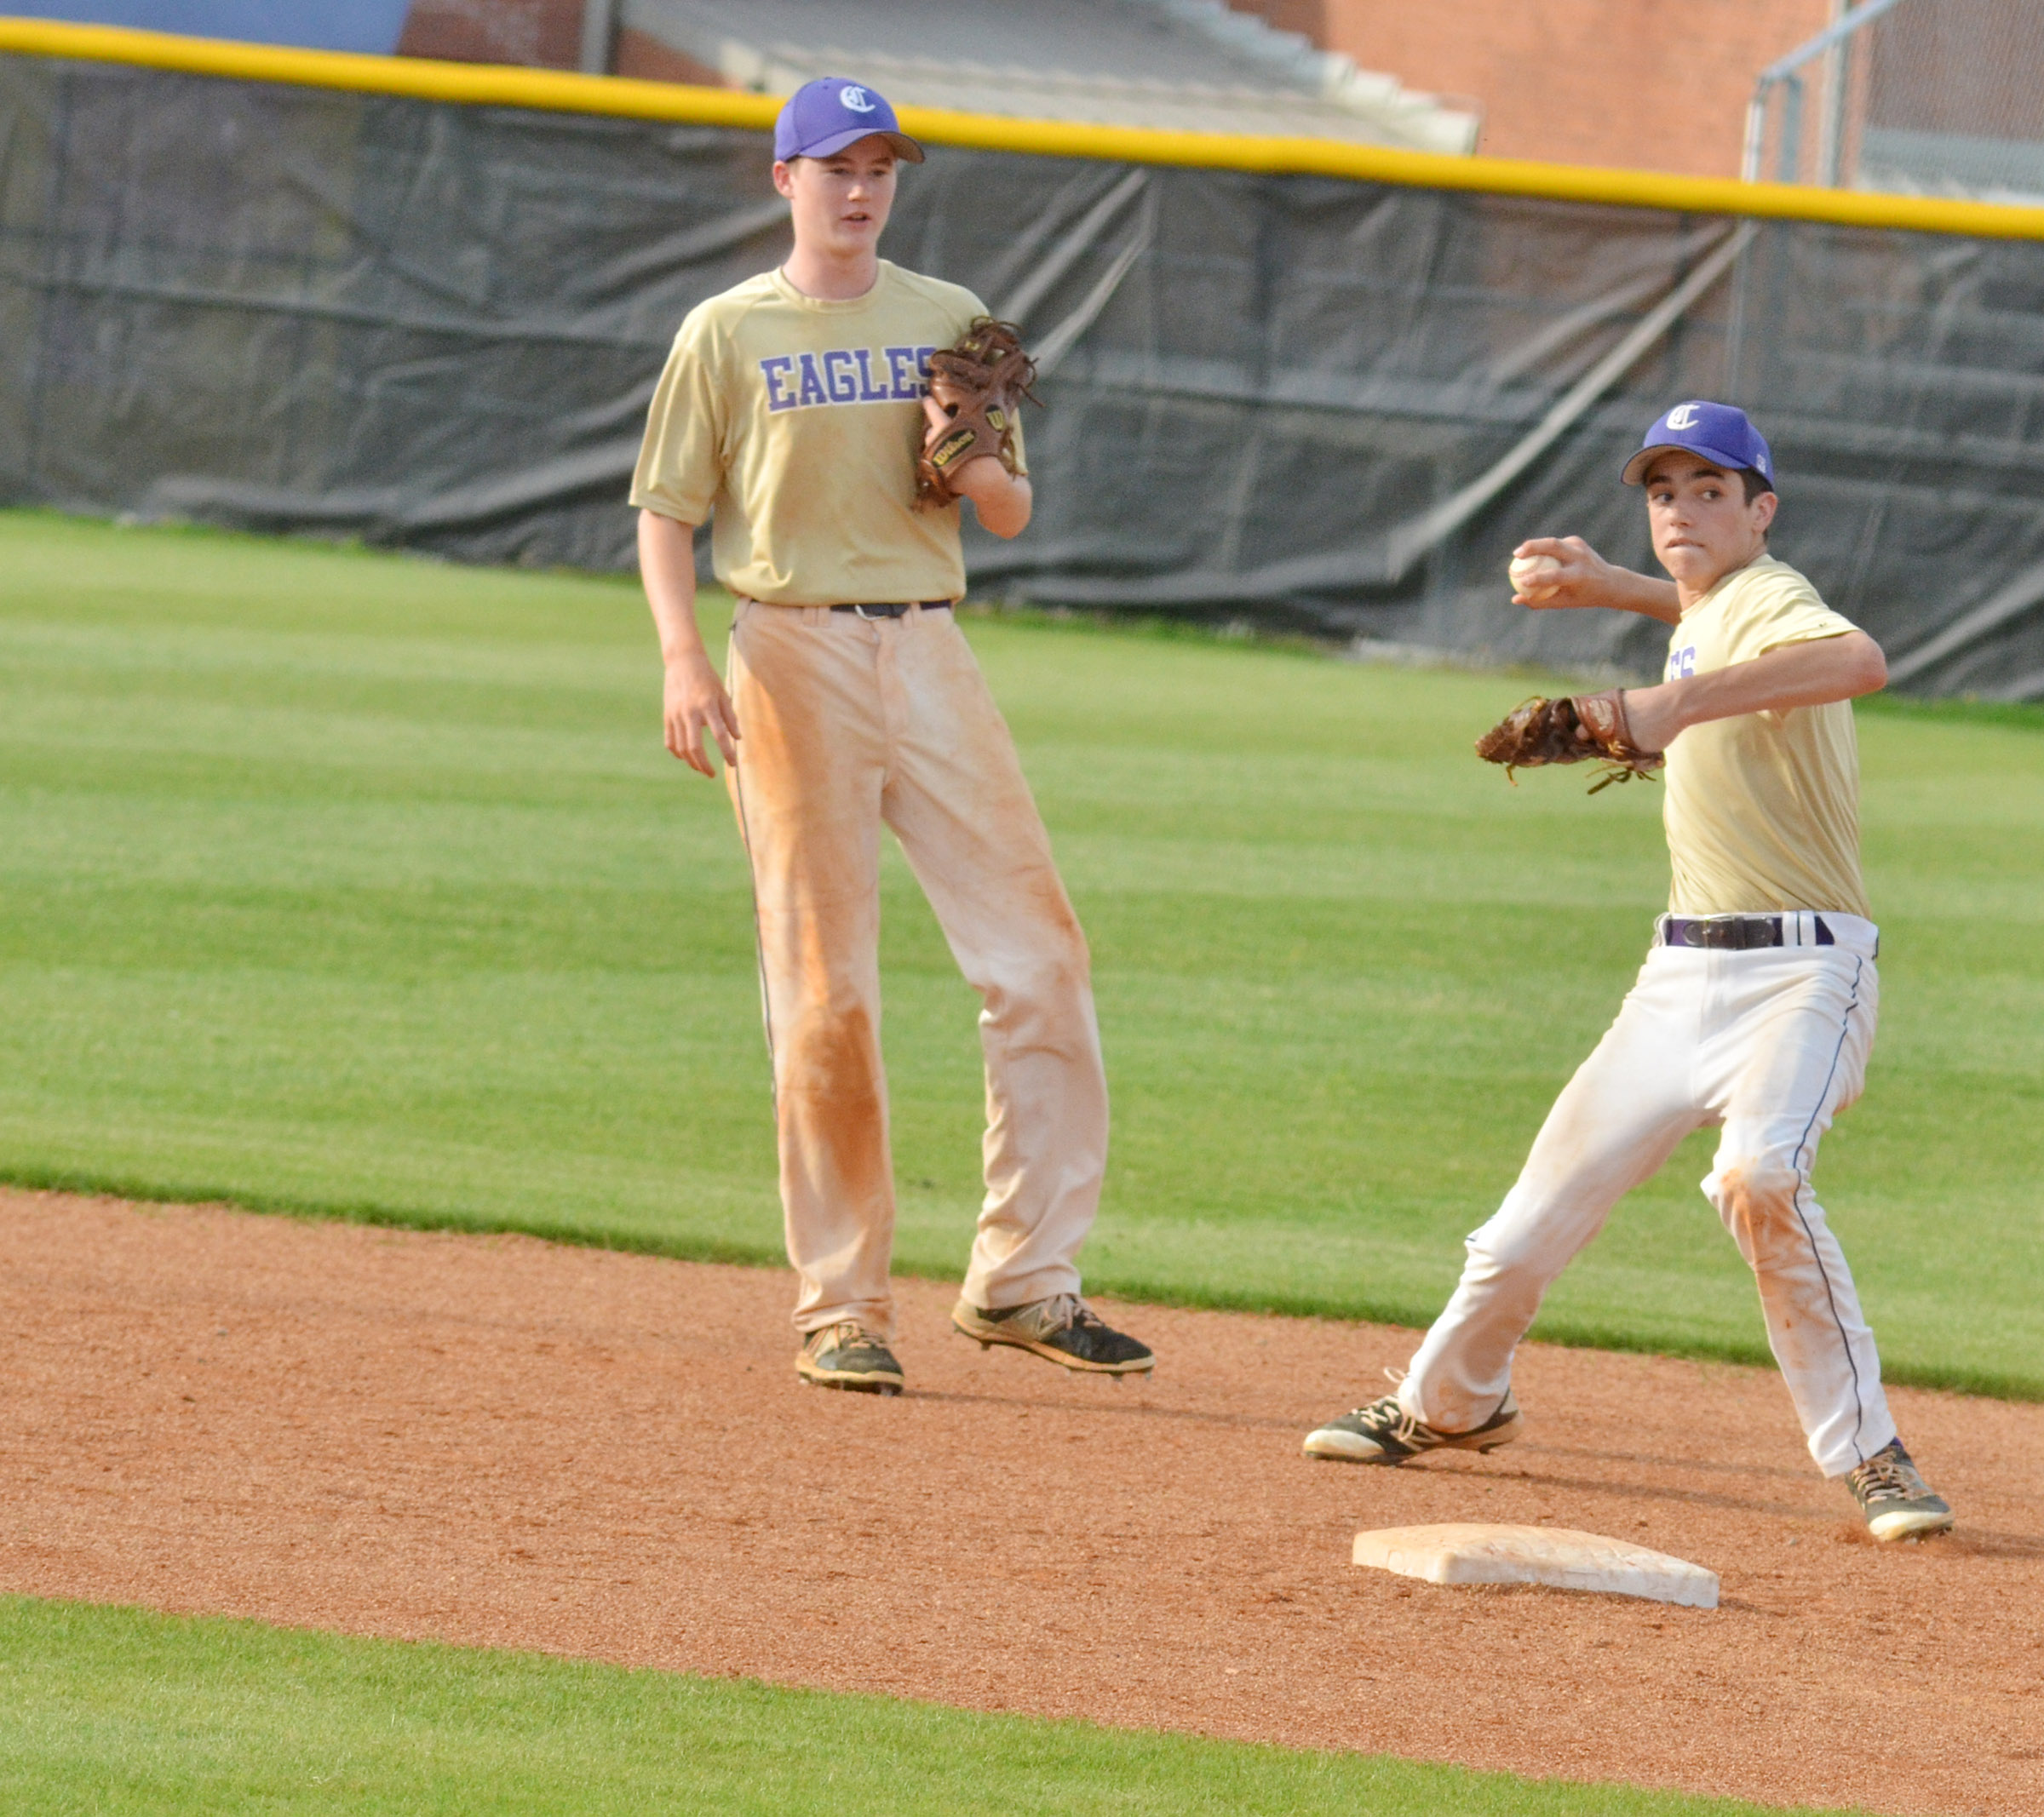 CMS eighth-grader Kameron Smith throws to first for an out as classmate Tristin Faulkner looks on.